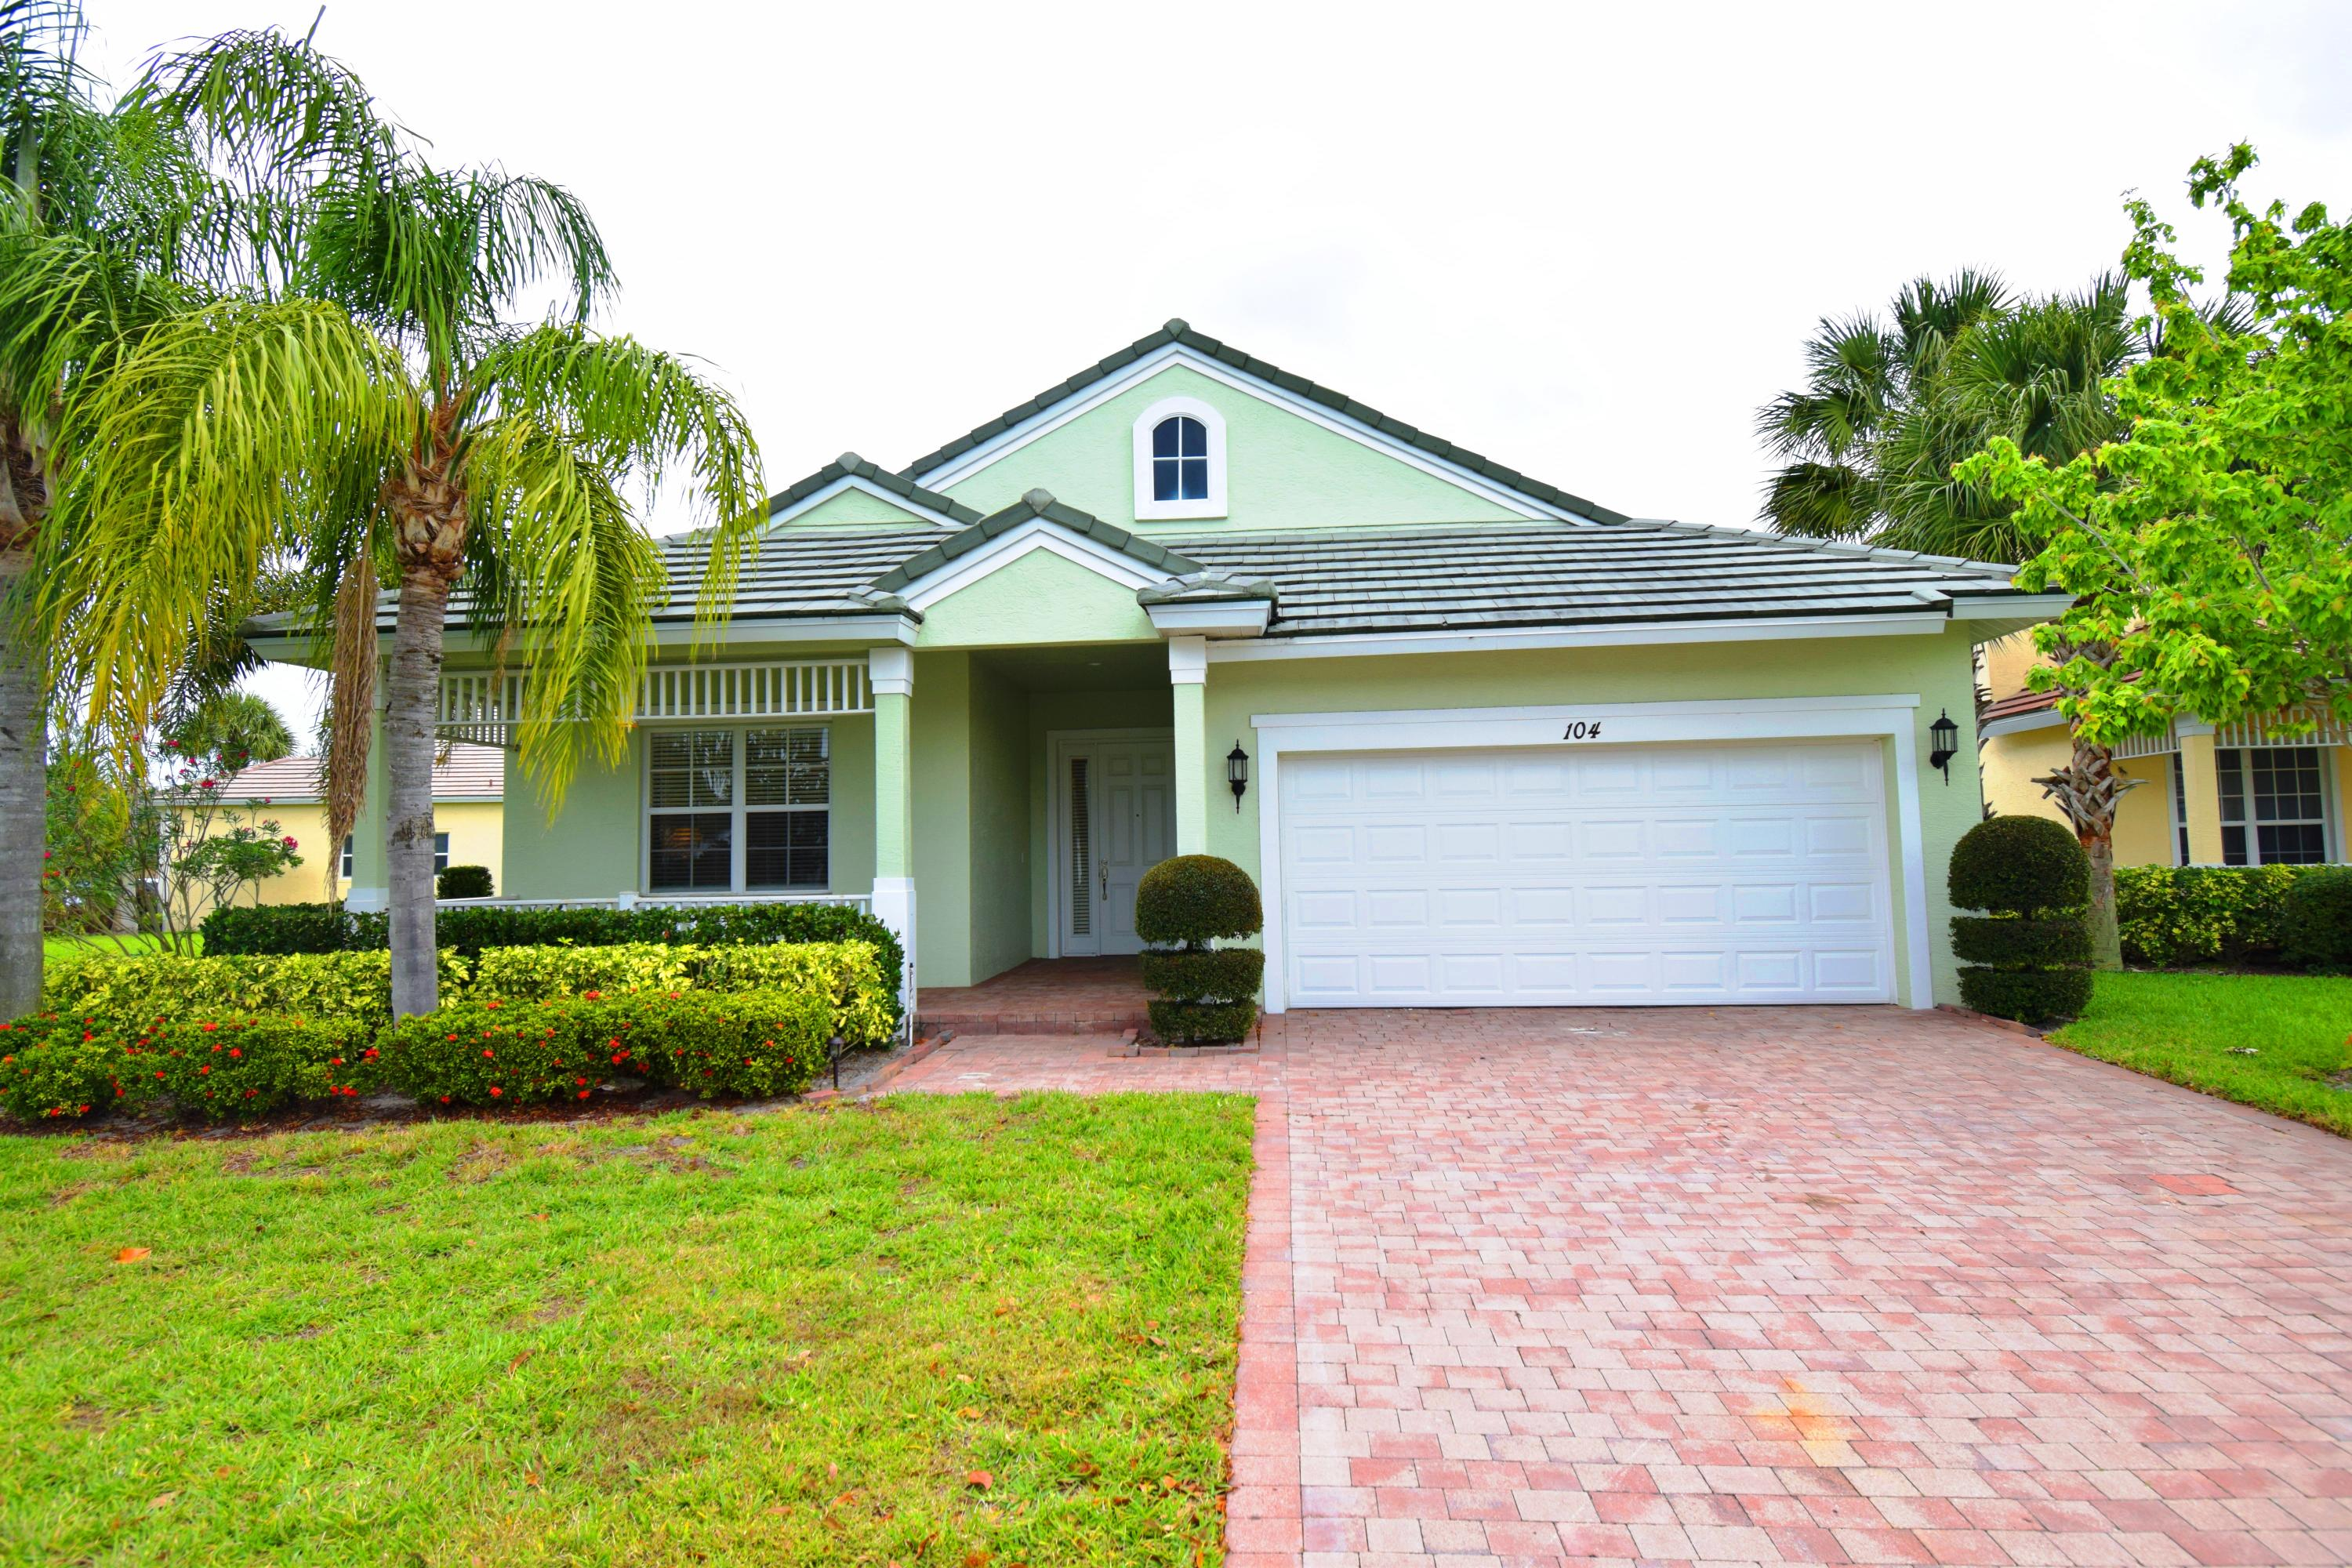 Details for 104 Willow Grove Avenue Nw, Port Saint Lucie, FL 34986